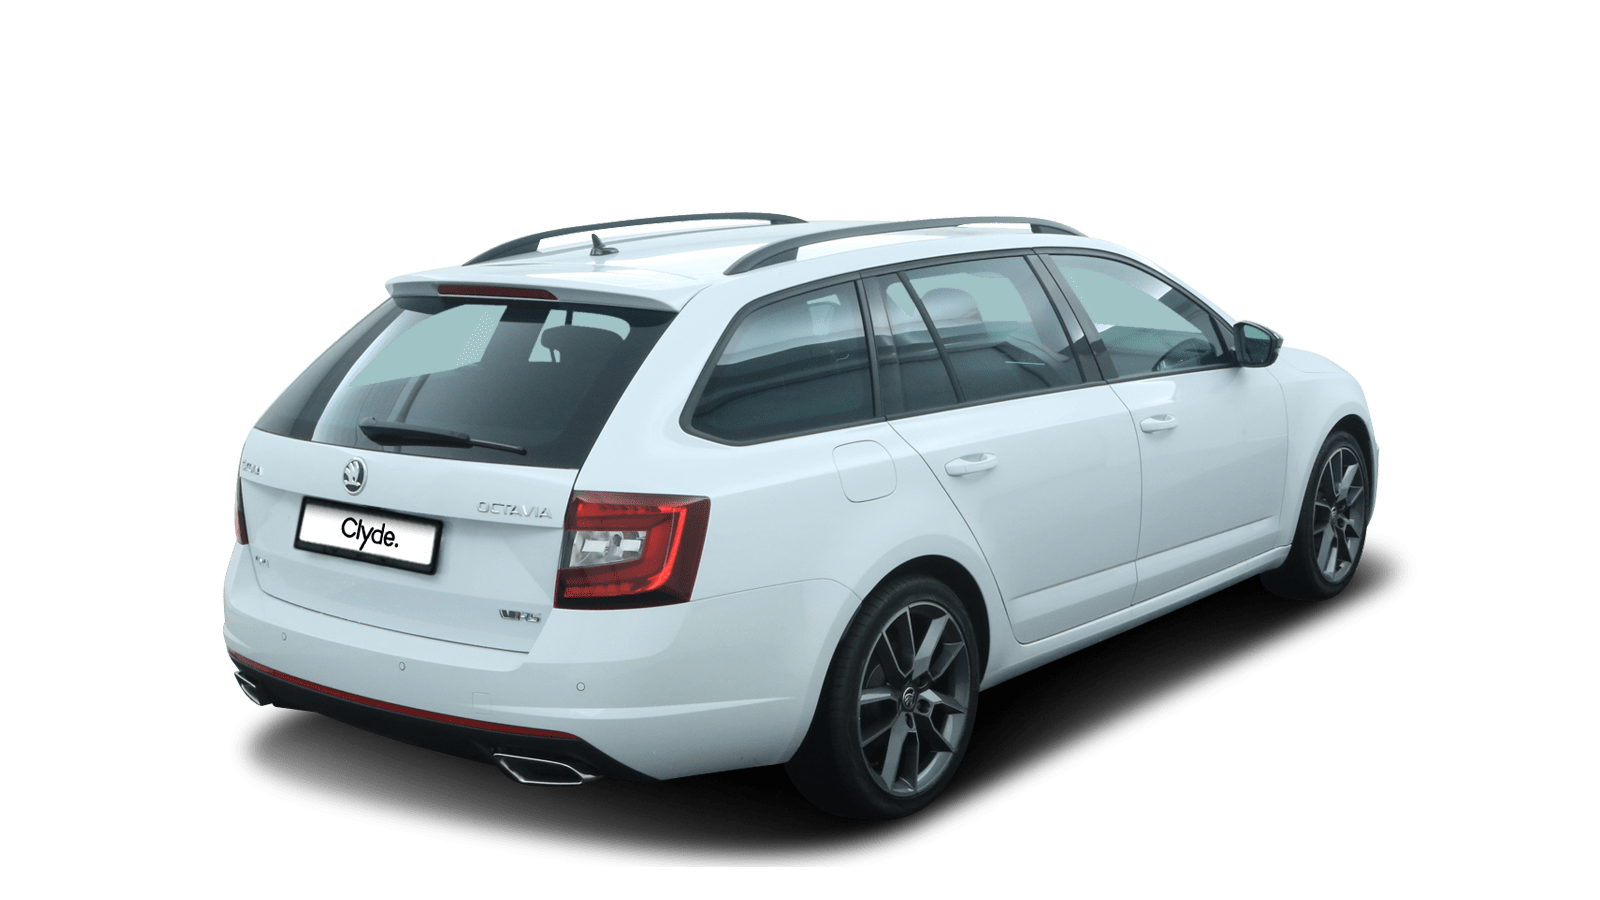 ŠKODA OCTAVIA COMBI RS White back - Clyde car subscription